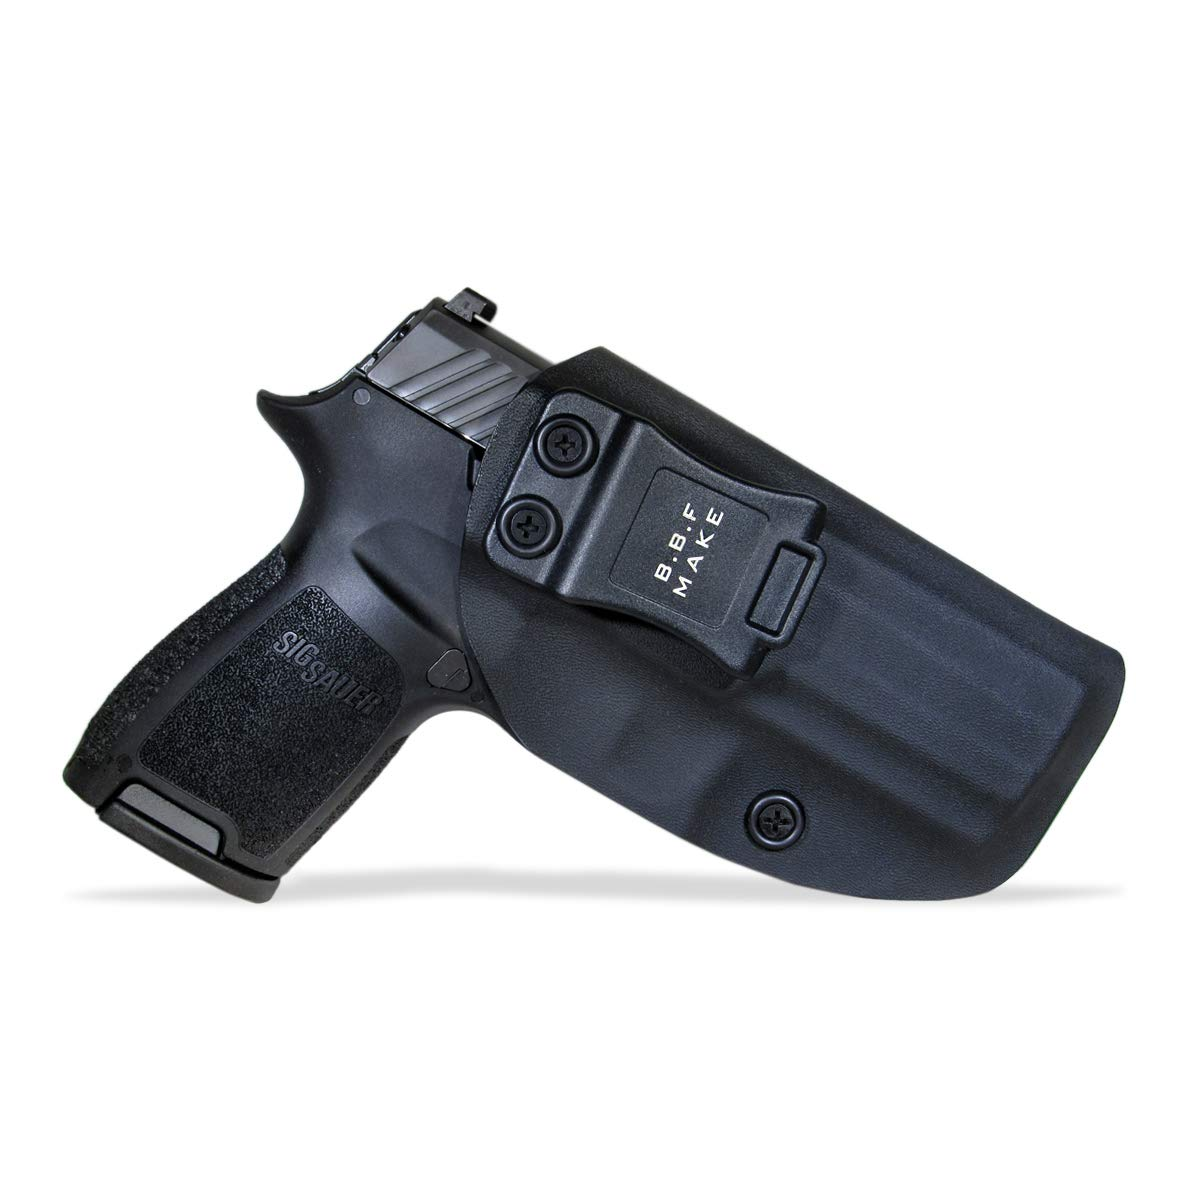 BBF Make IWB KYDEX Holster Fit: Sig Sauer P320 Carry/Compact | Retired Navy  Owned Company | Inside Waistband | Adjustable Cant | US KYDEX Made